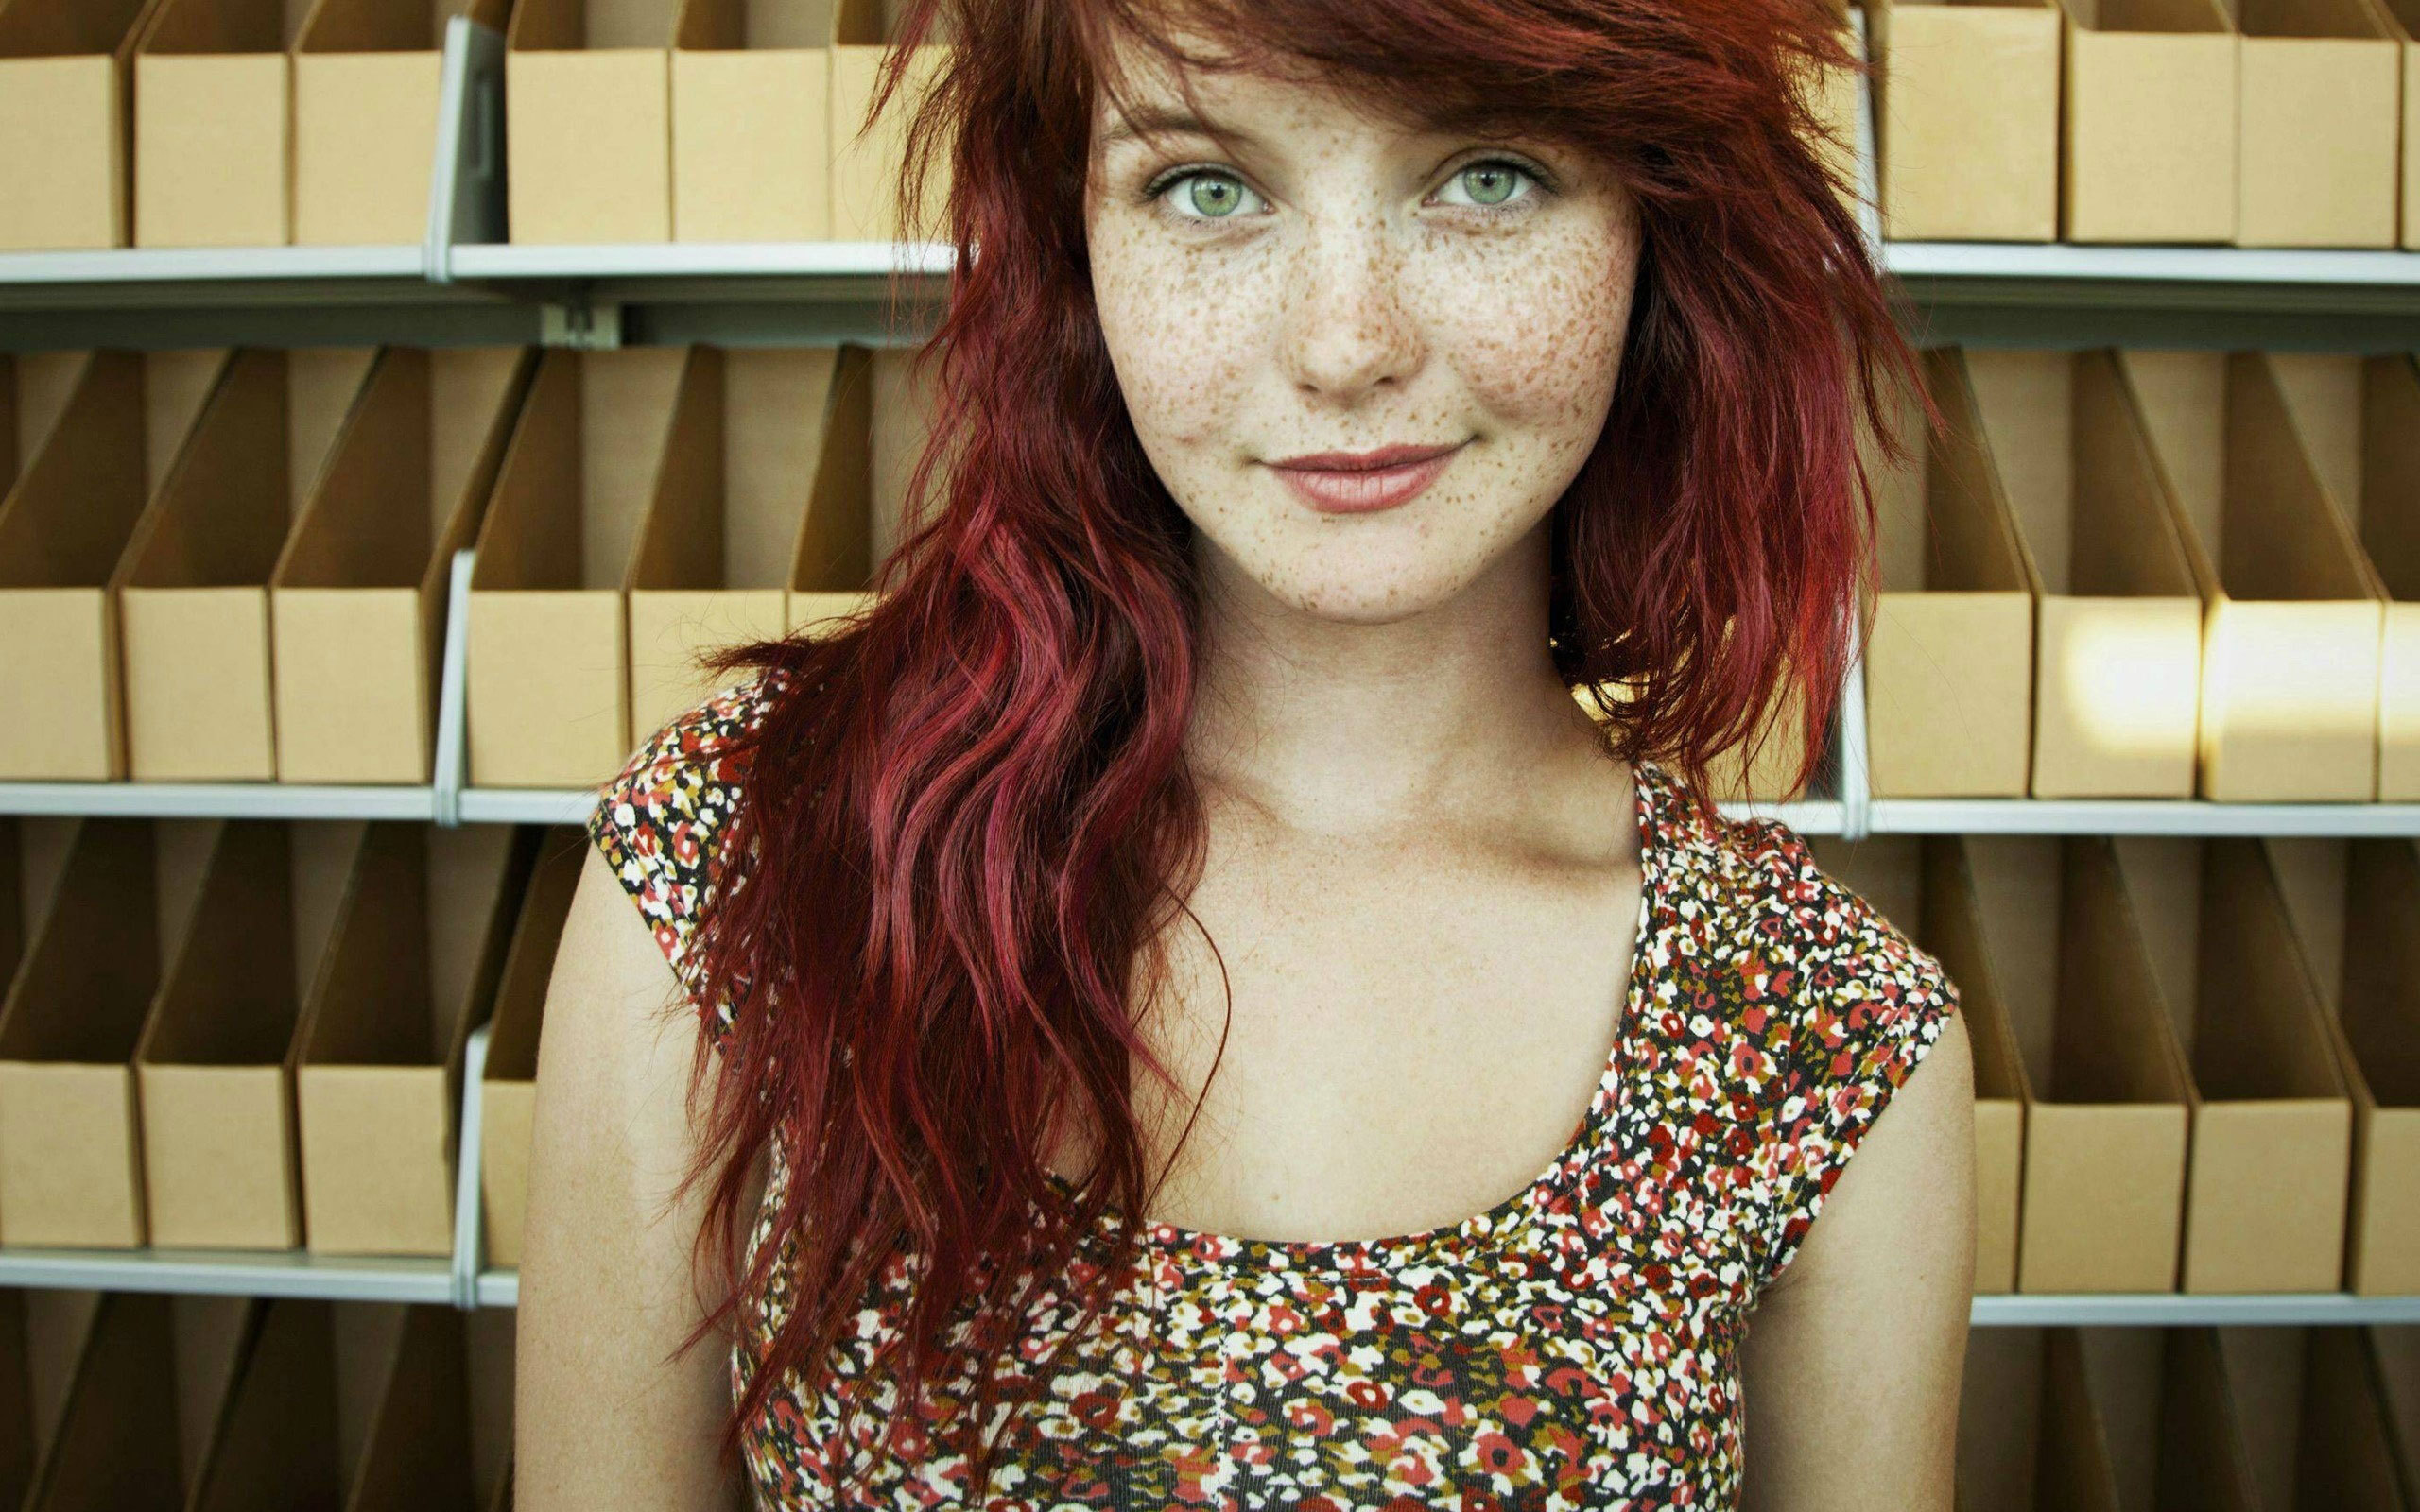 Freckled Girls Wallpapers